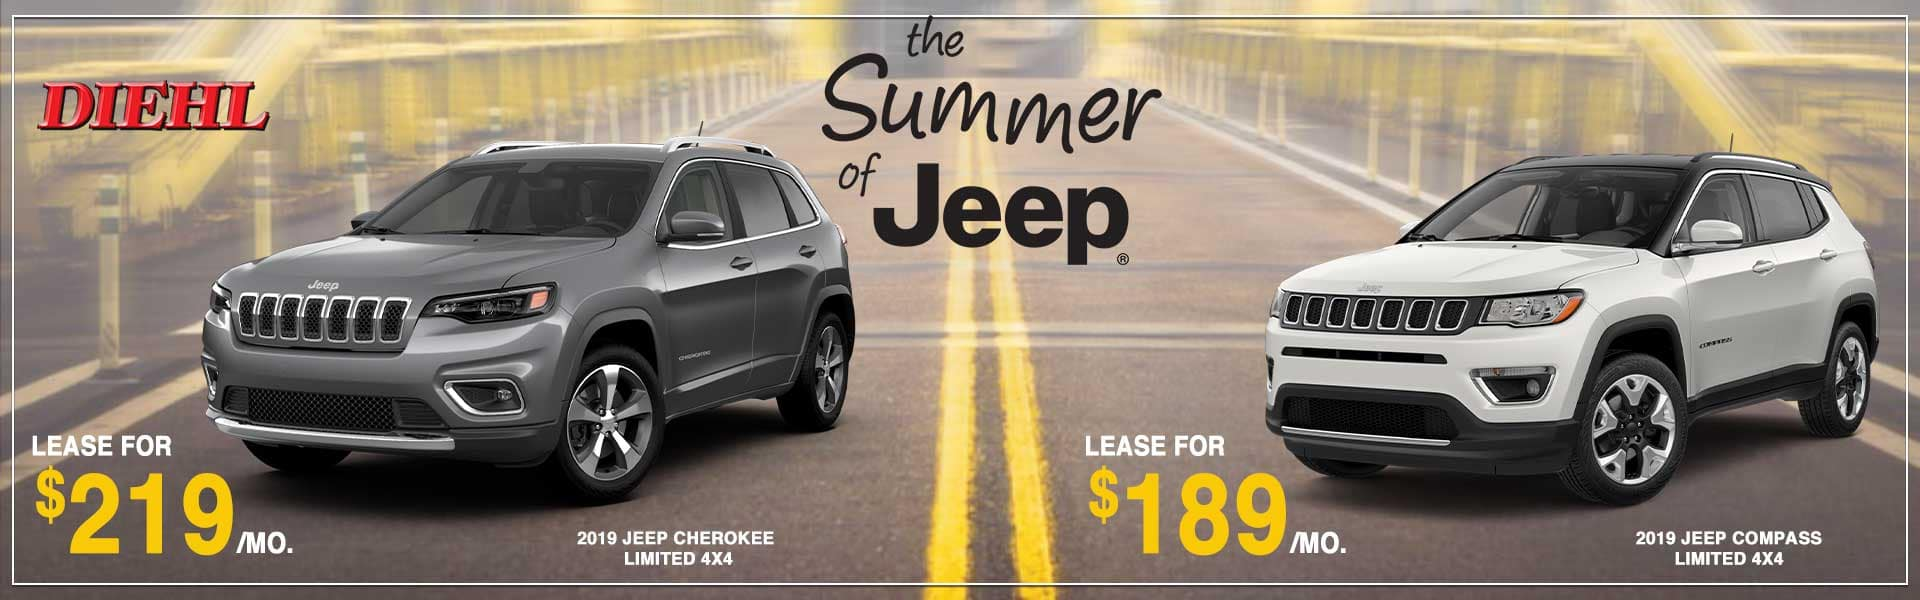 DIEHL AUTOMOTIVE trade in trade up sales event summer of jeep event summer clearance event jeep lease new vehicle special moon township GROVE CITY BUTLER ROBINSON SALEM OHIO Labor Day sales event